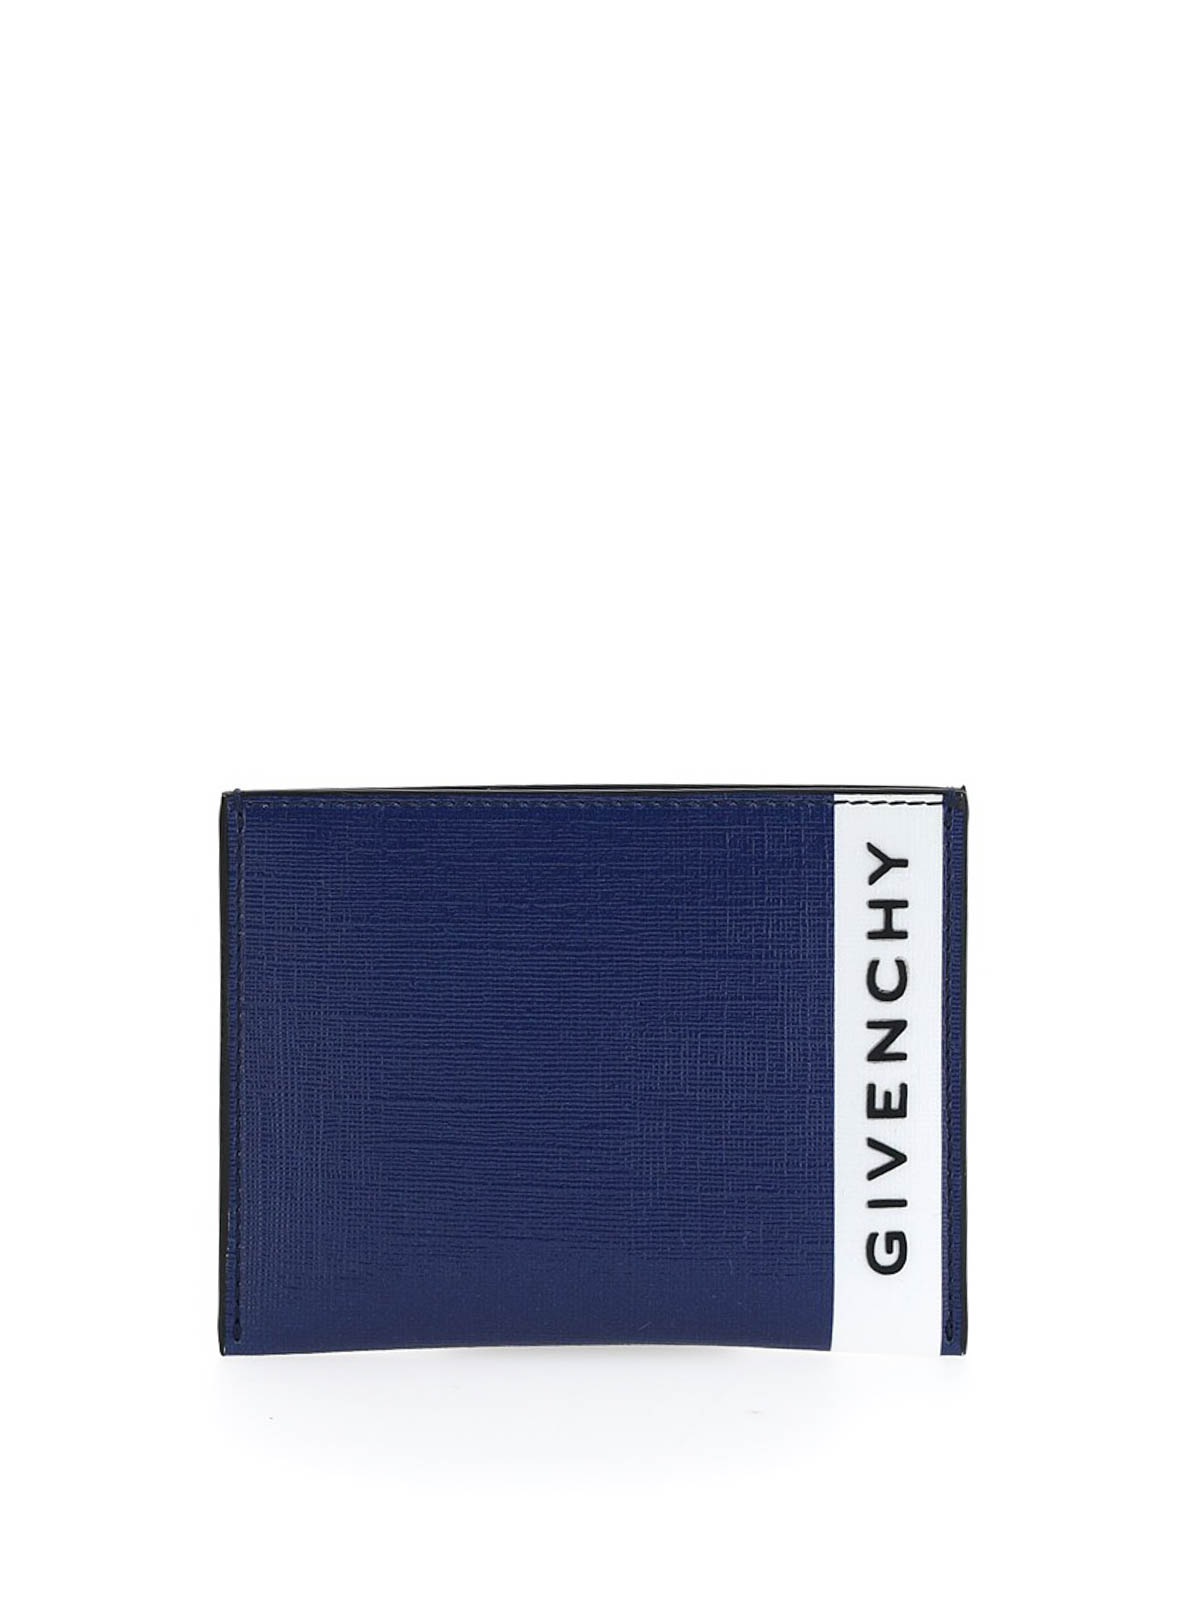 Givenchy Eco Saffiano Leather Card Holder In Blue